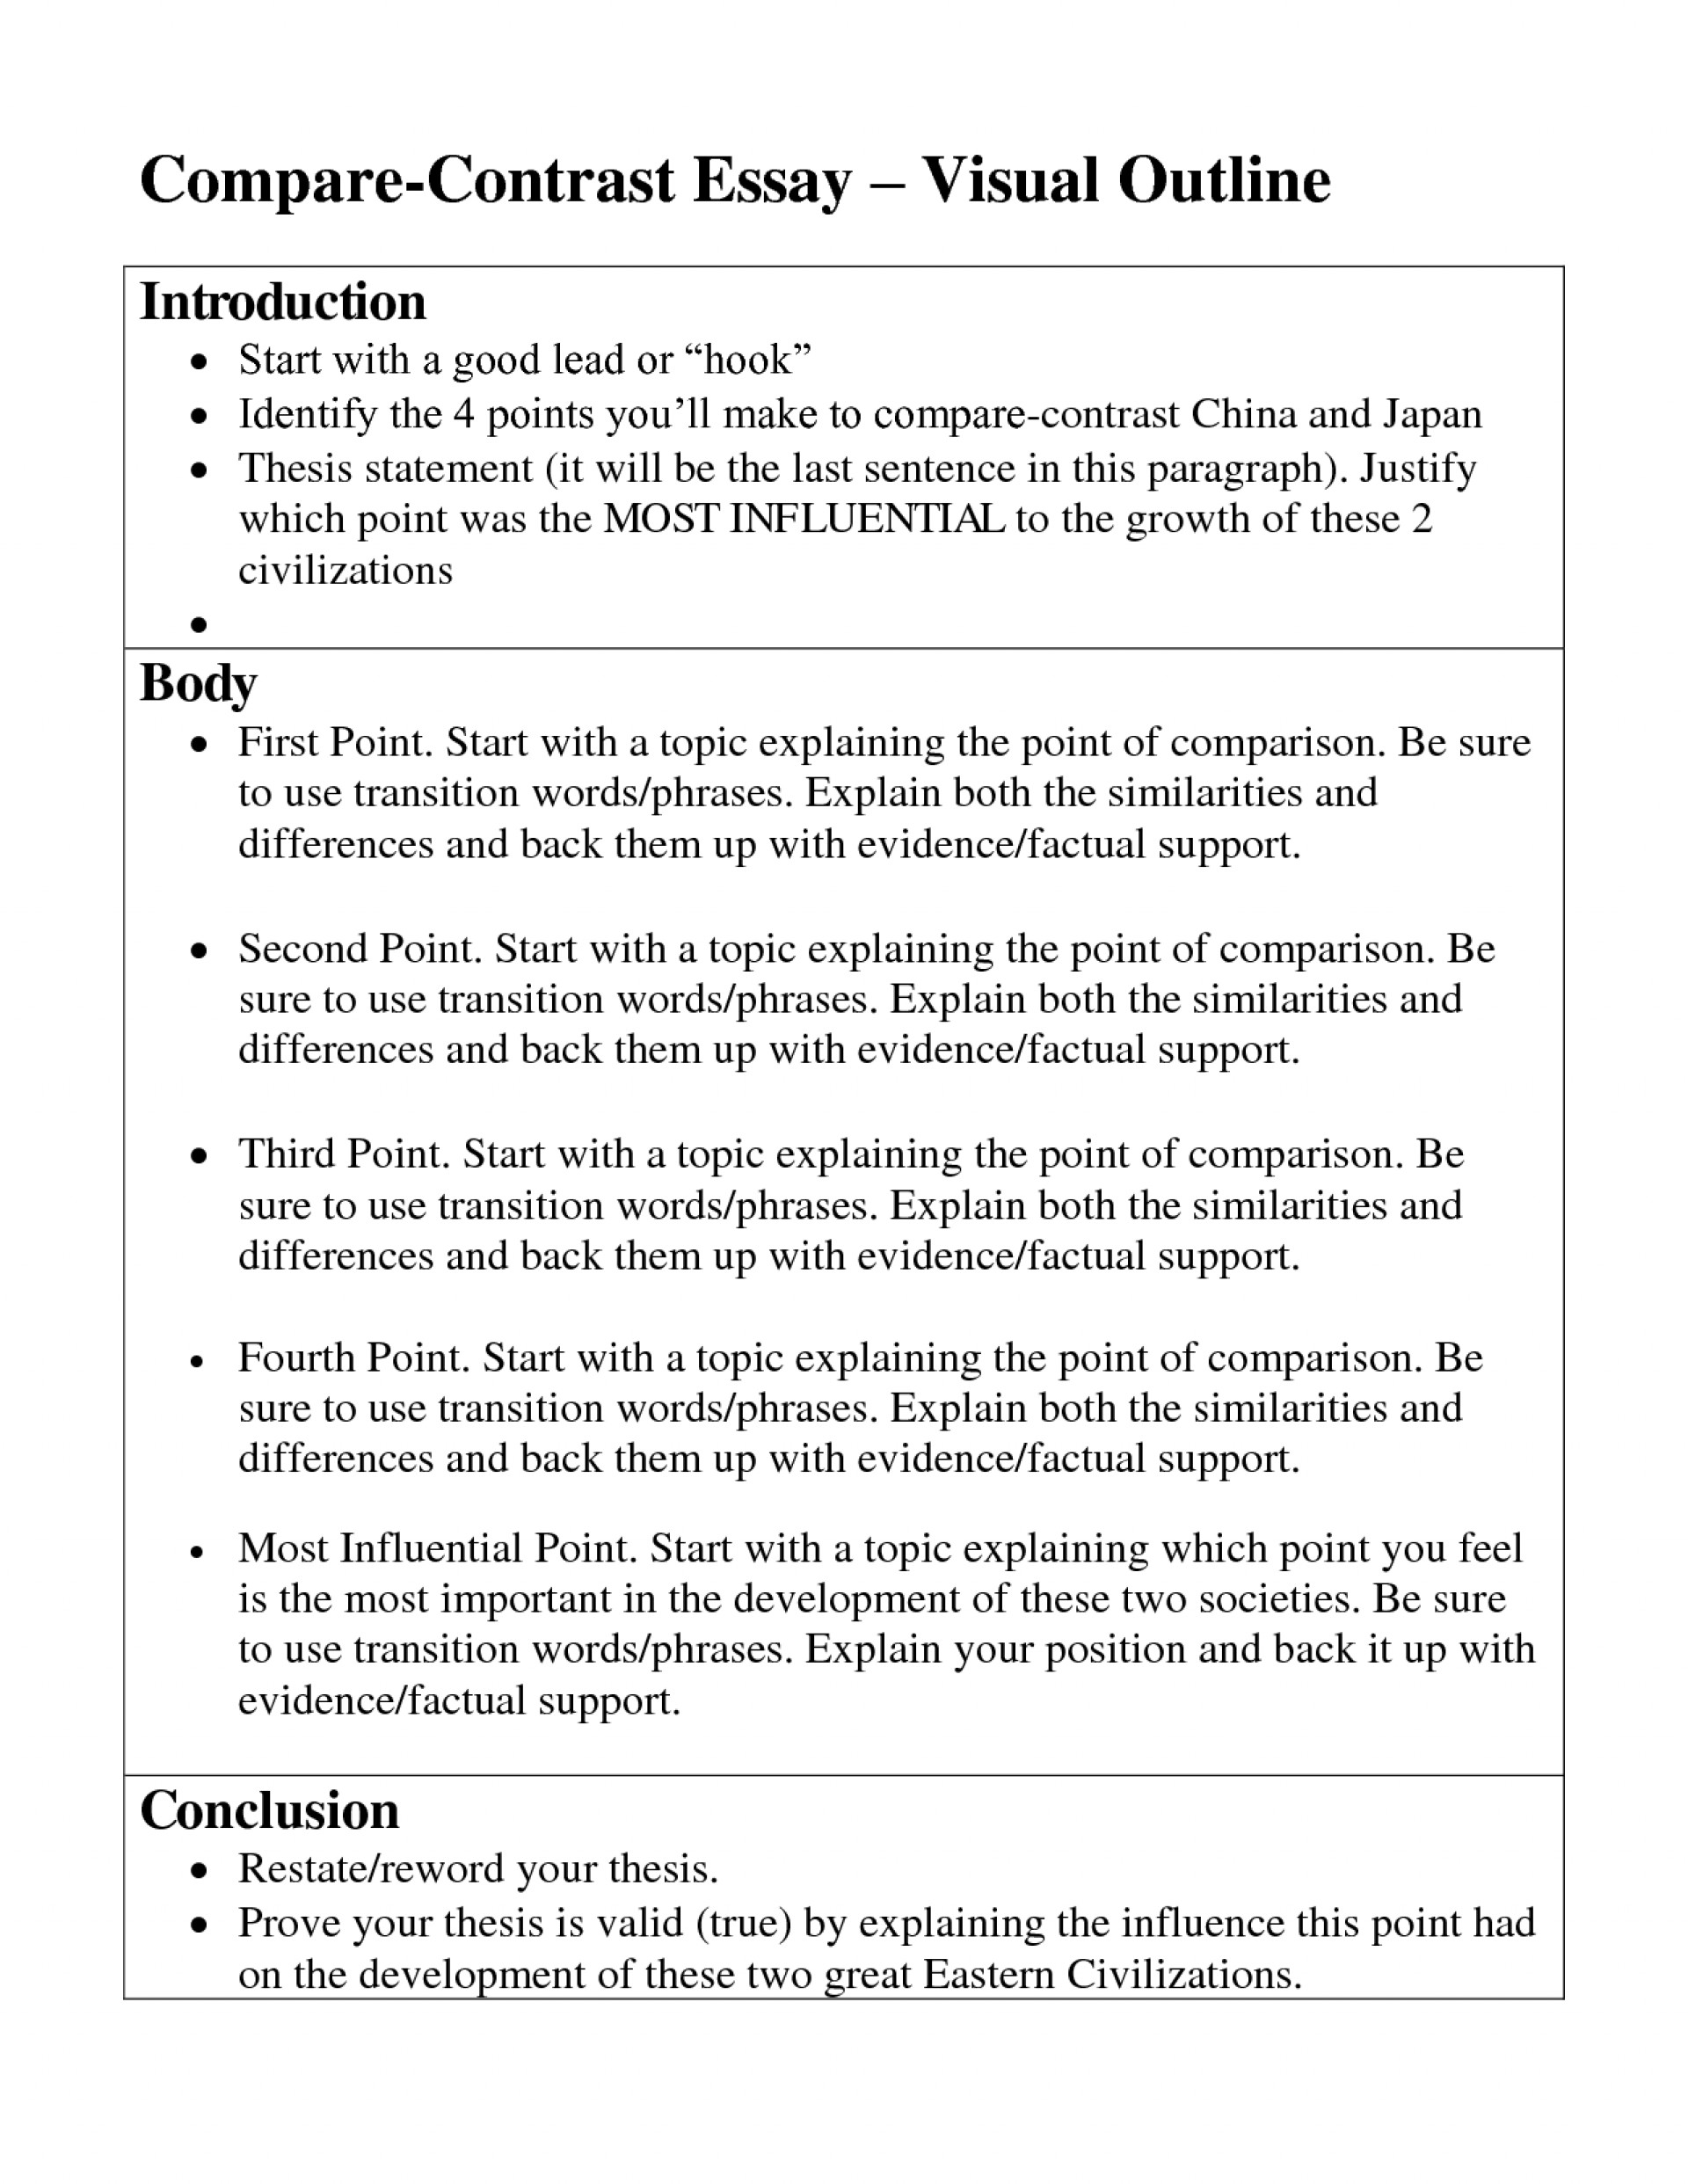 005 Essay Example Compare And Contrast Ideas Unforgettable Prompts High School For 7th Grade 1920